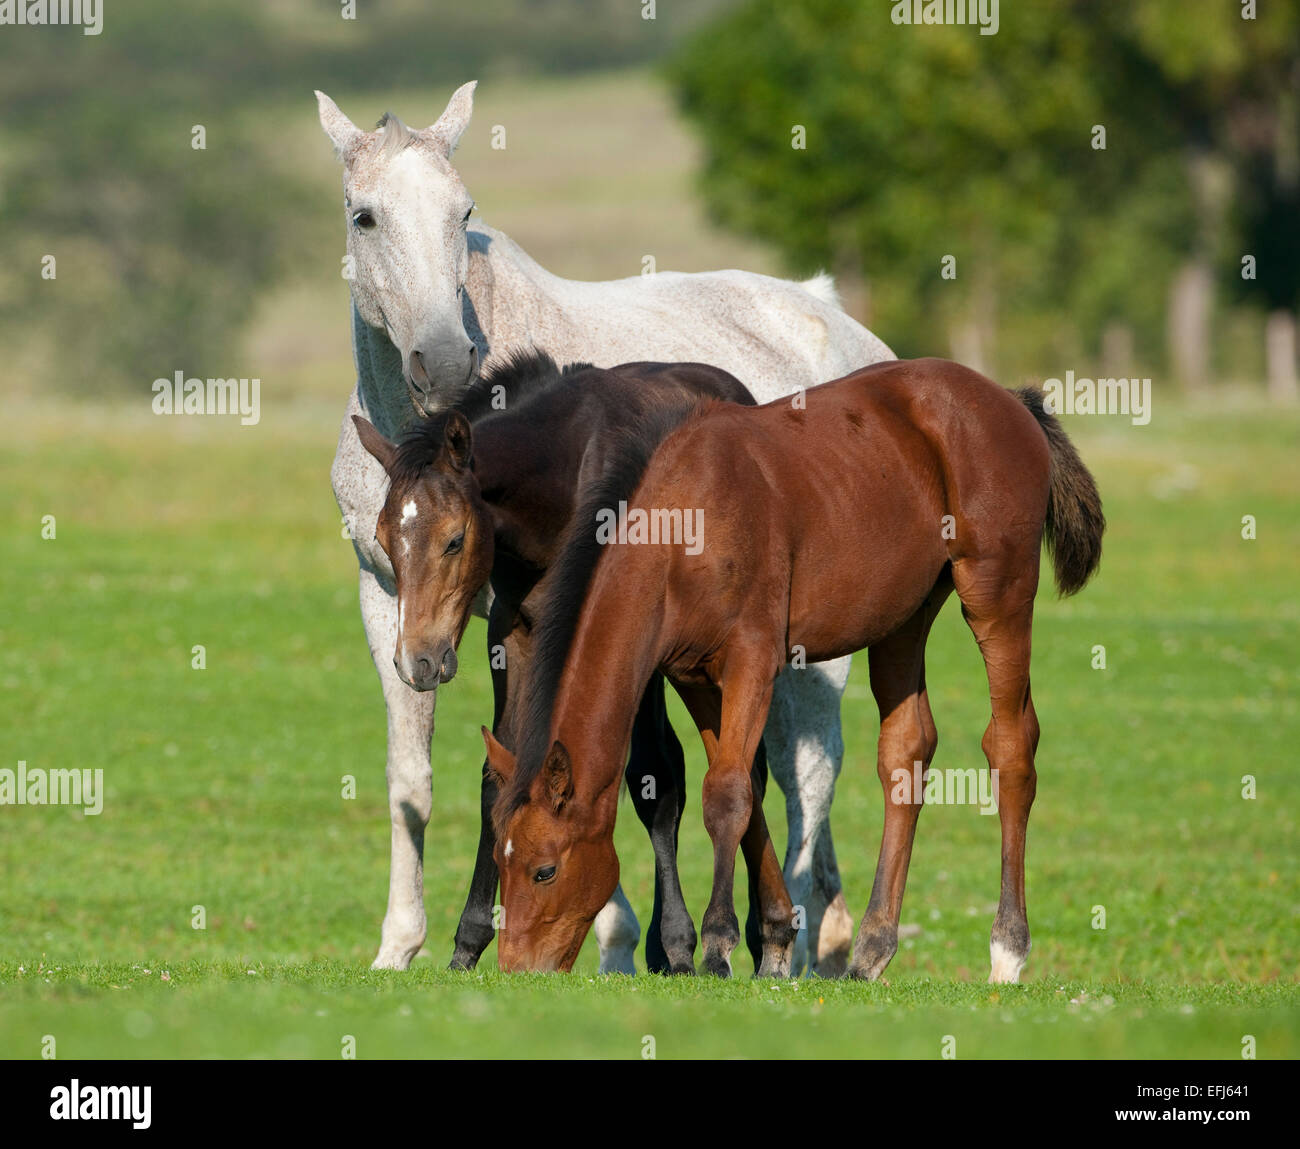 Horses, white mare and two foales with dark coats, Thuringia, Germany - Stock Image